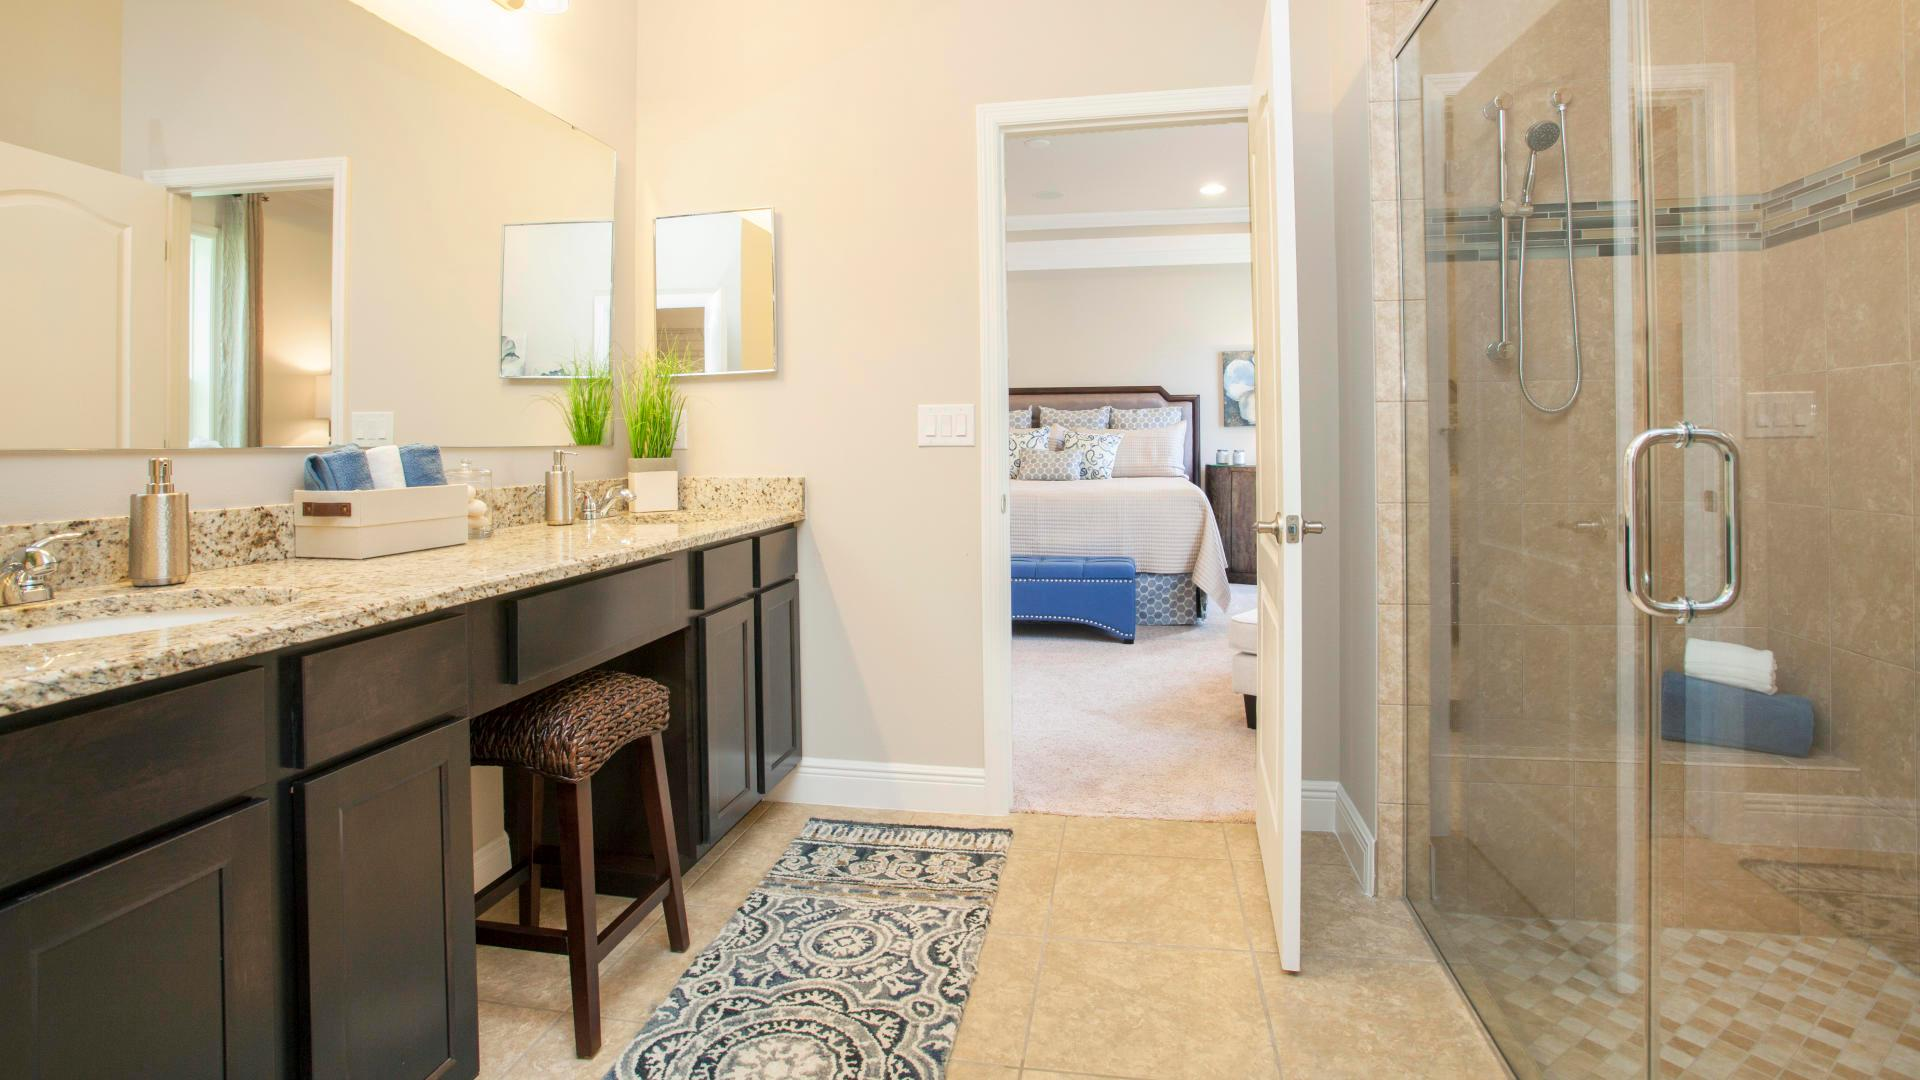 Bathroom featured in the Melody By Maronda Homes in Melbourne, FL